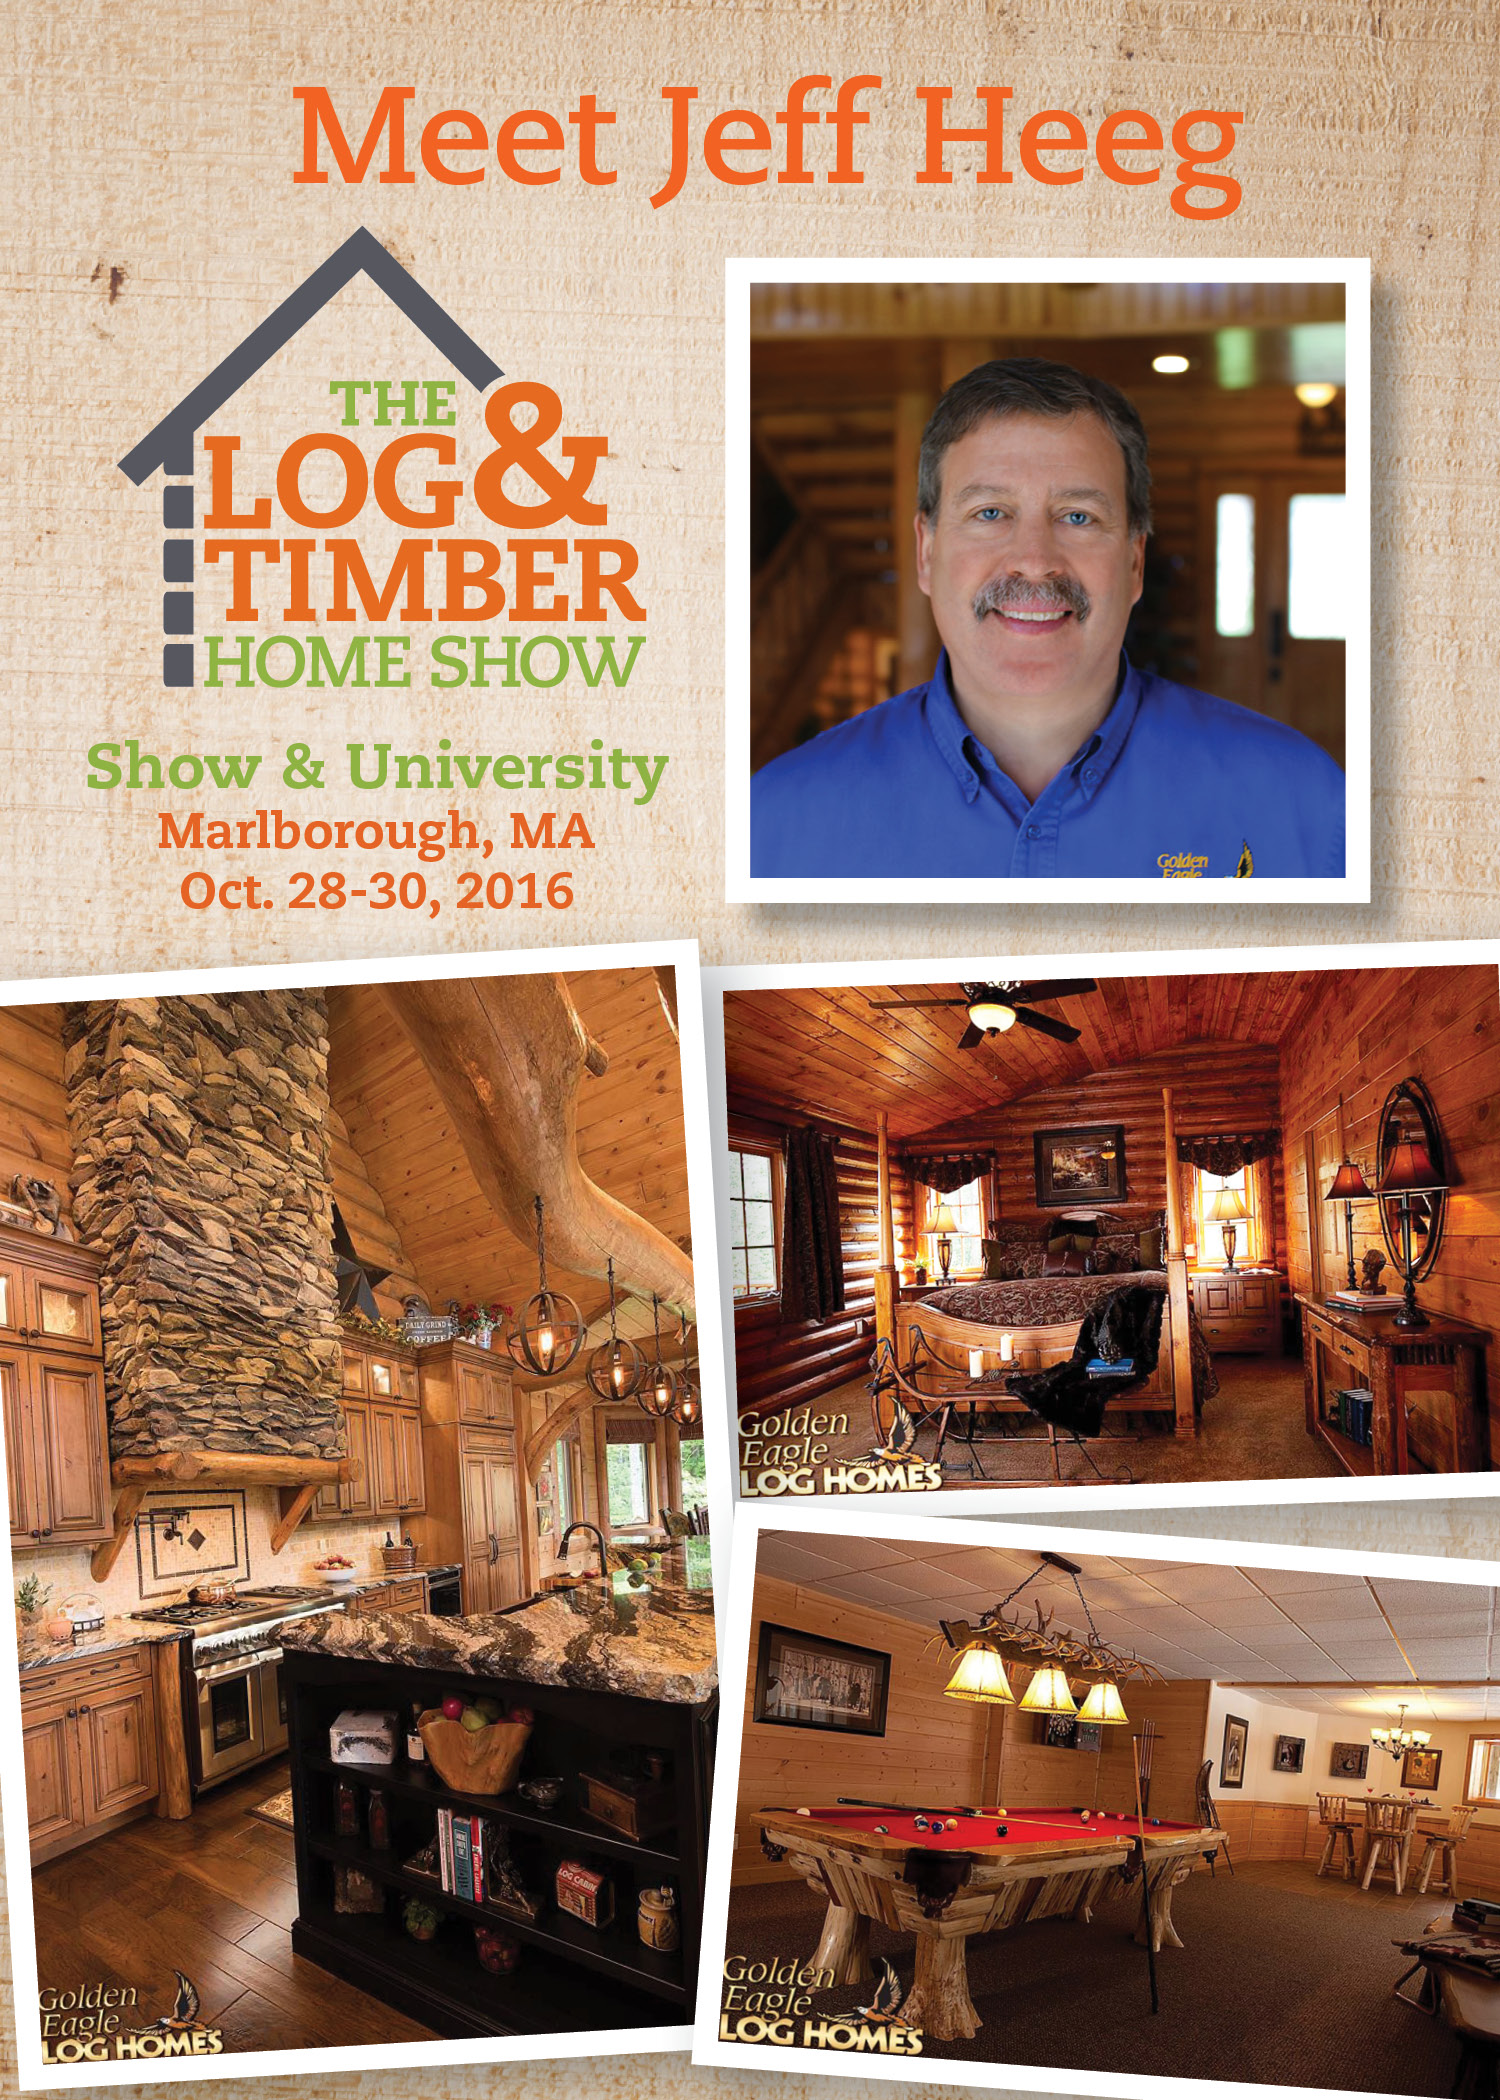 Marlborough MA 2016 Log & Timber Home Show Workshop Highight Jeff Heeg